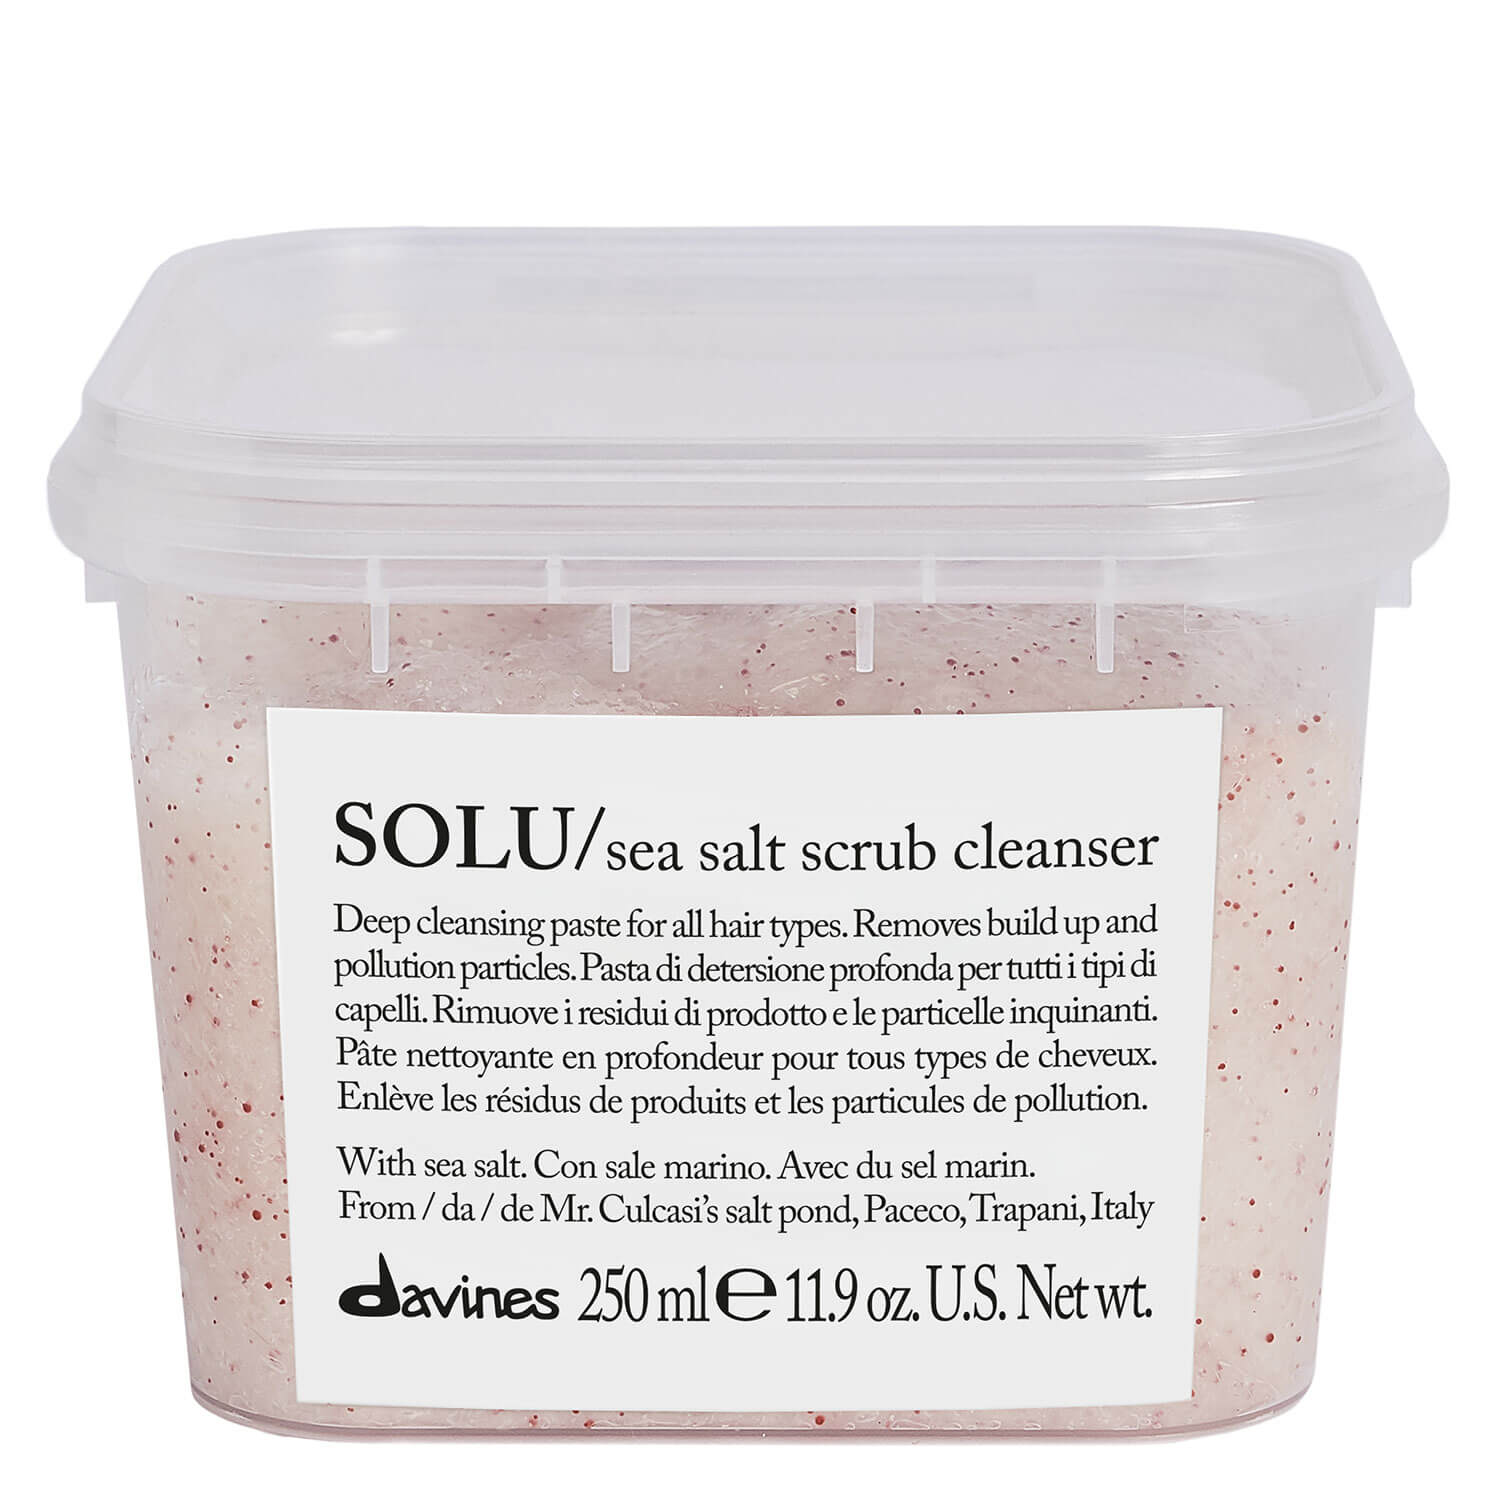 Essential Haircare - SOLU Sea Salt Scrub Cleanser